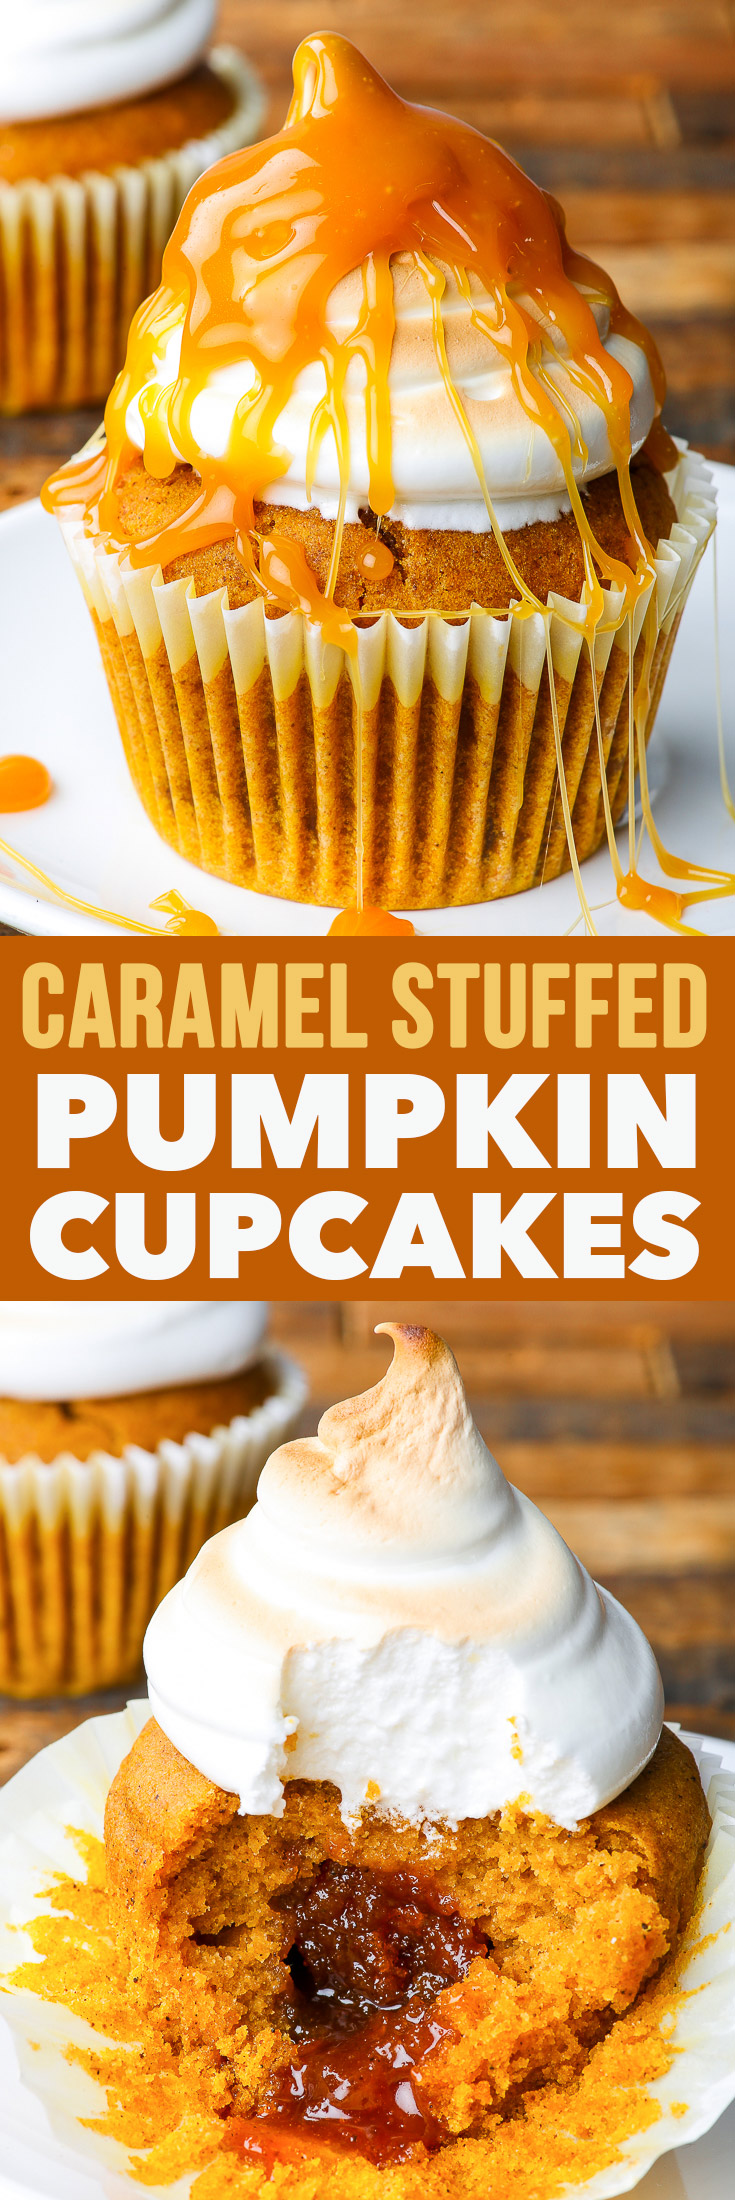 Dairy & Gluten Free Caramel-Stuffed Pumpkin Cupcakes with Marshmallow Frosting {gluten, dairy, nut & soy free} - These dairy and gluten free pumpkin cupcakes are the ultimate fall dessert. Stuffed with homemade caramel and topped with a sweet, fluffy marshmallow frosting, they will make your taste buds all sorts of happy. #pumpkindessert #pumpkincupcakes #caramel #homemadecaramel #dairyfree #glutenfree